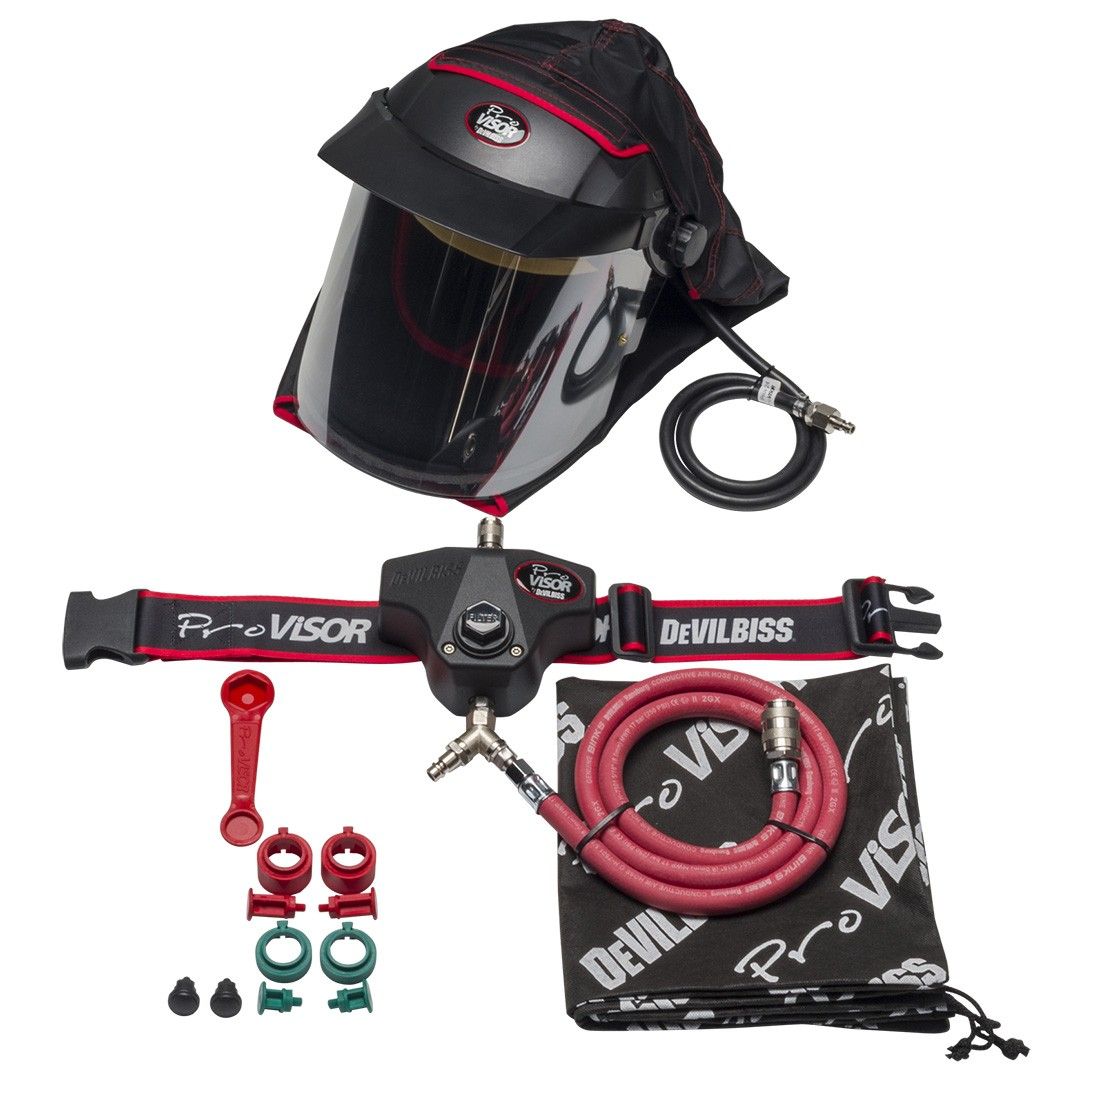 Devilbiss Air Fed Full Face Mask Kit PROV-650